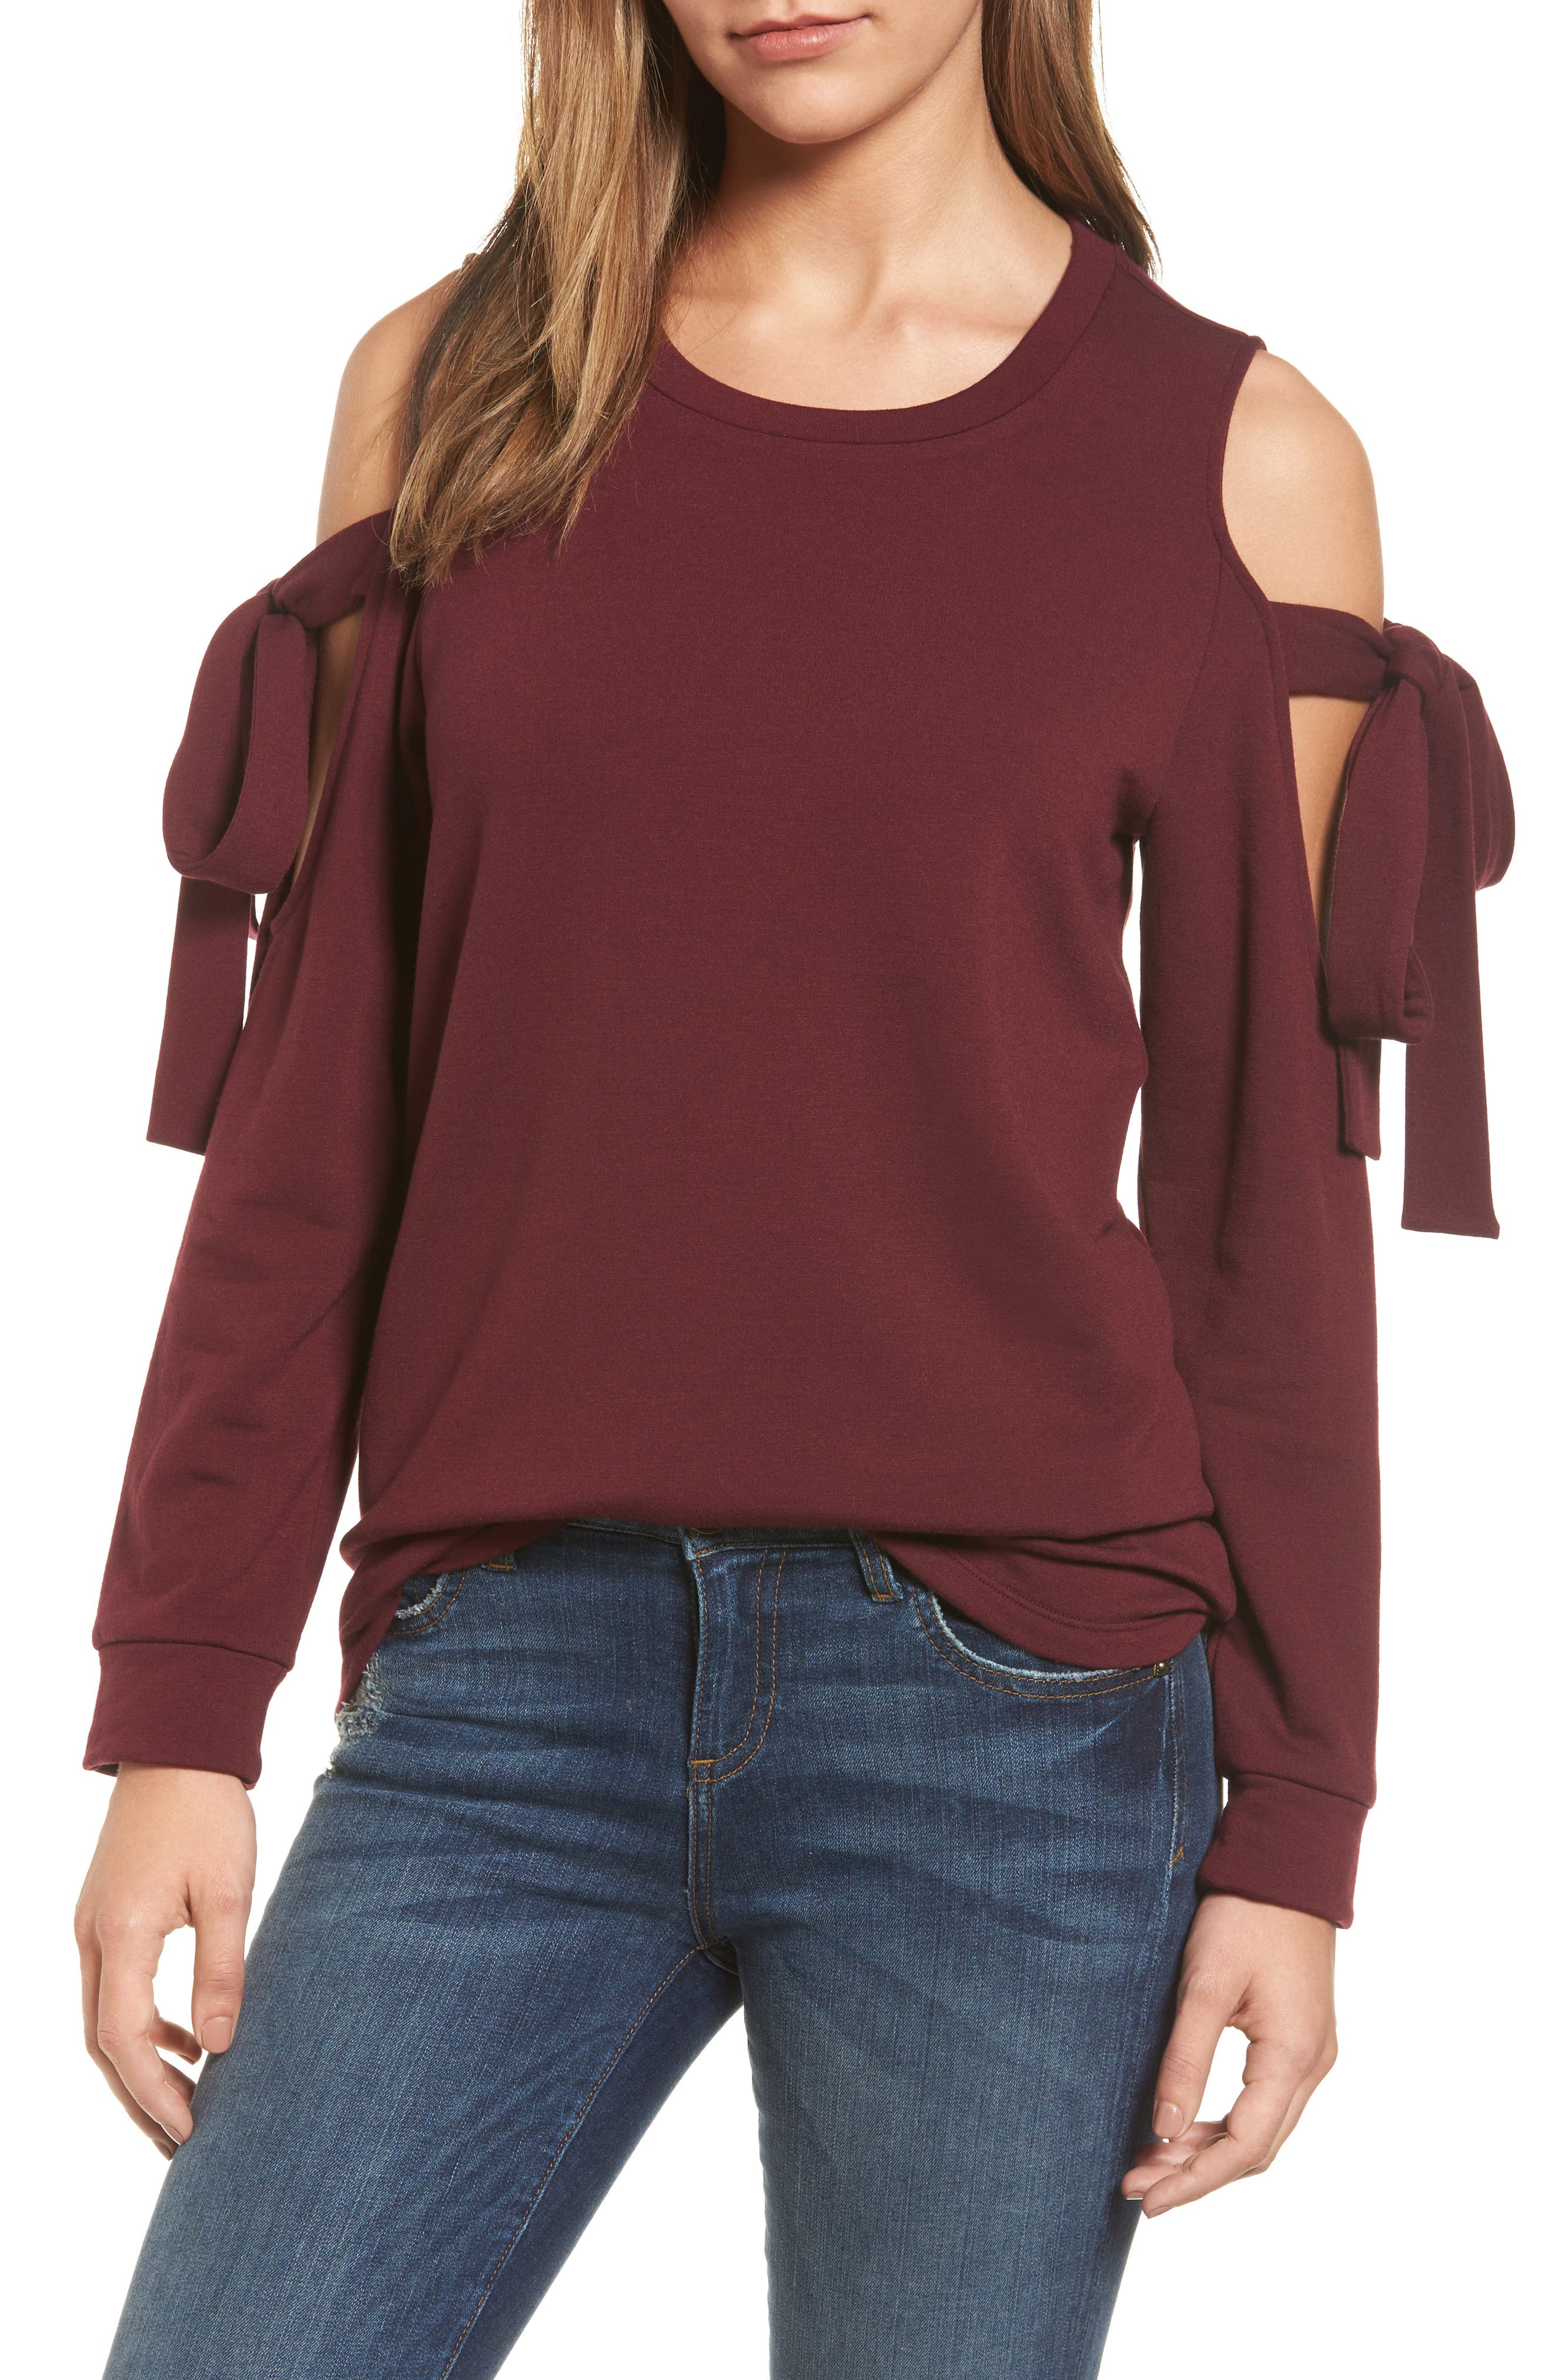 Alternate Image 1 Selected - Pleione Cold Shoulder Tie Sleeve Sweatshirt (Regular & Petite)